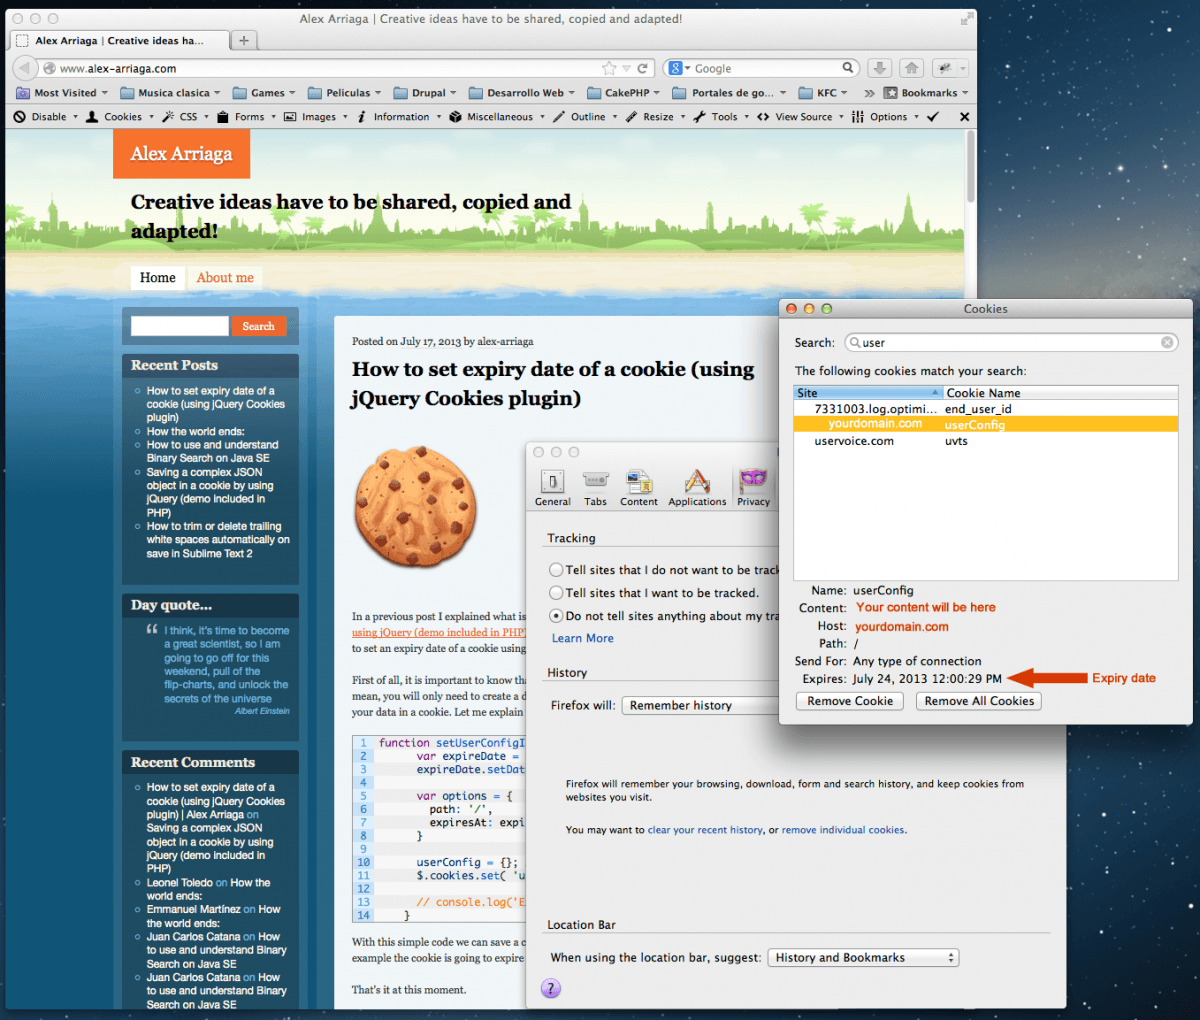 How To Set Expiry Date Of A Cookie (using Jquery Cookies Plugin